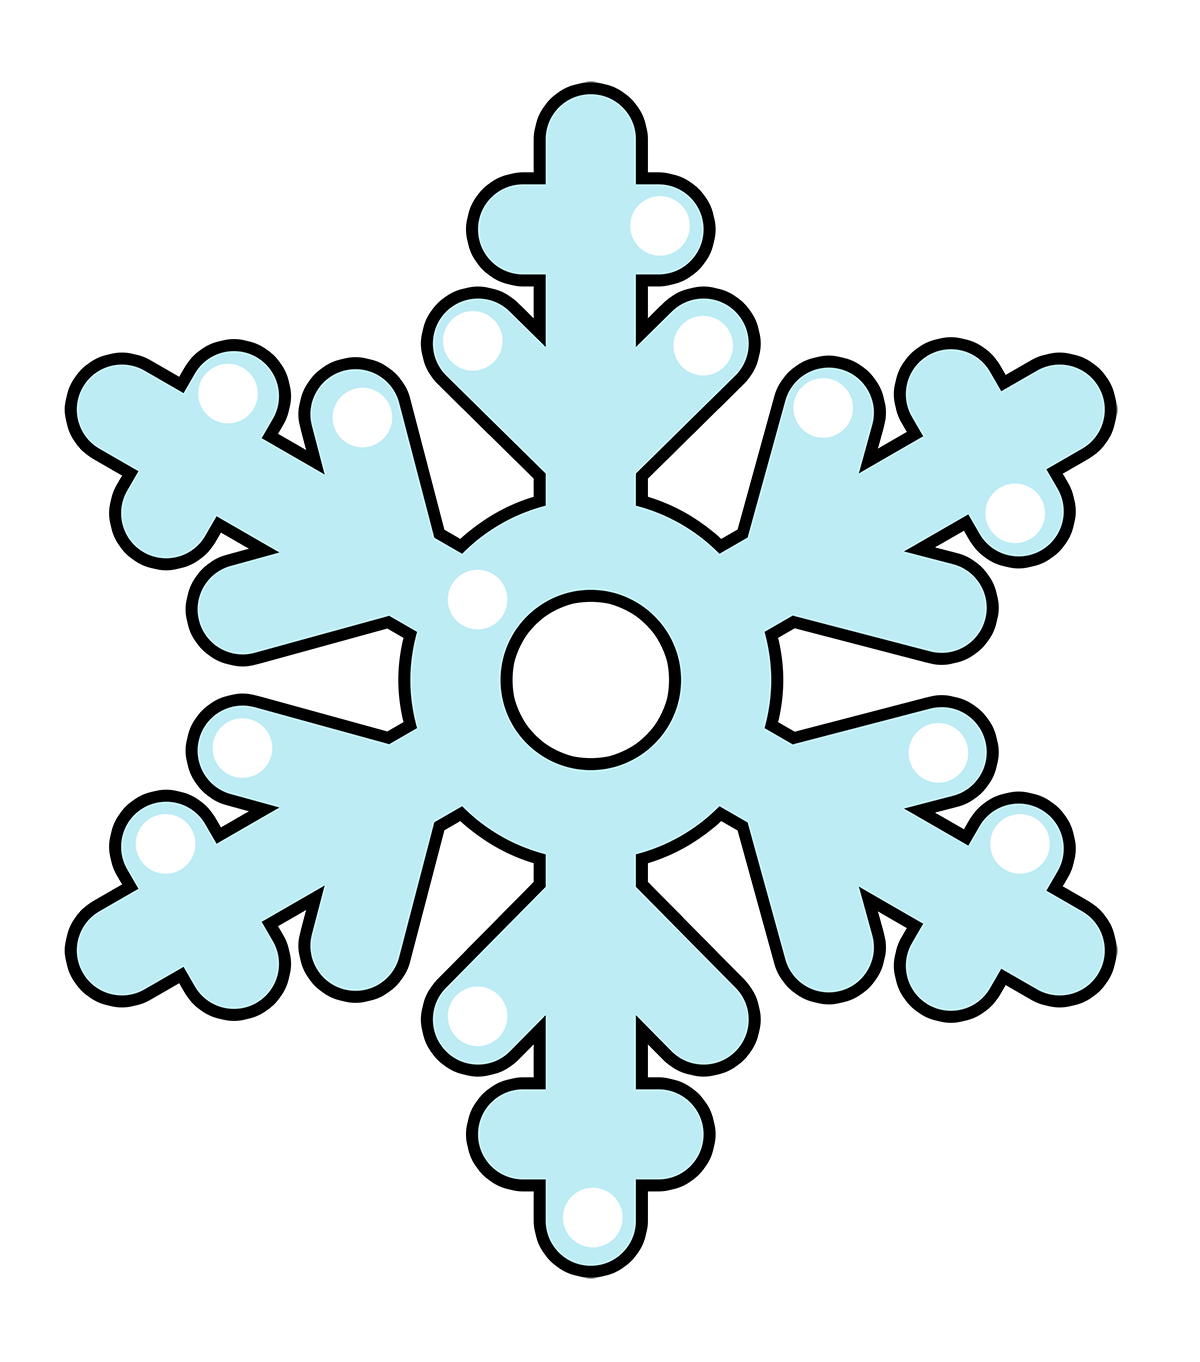 Snowflakes clipart cute. Free snow flake cliparts